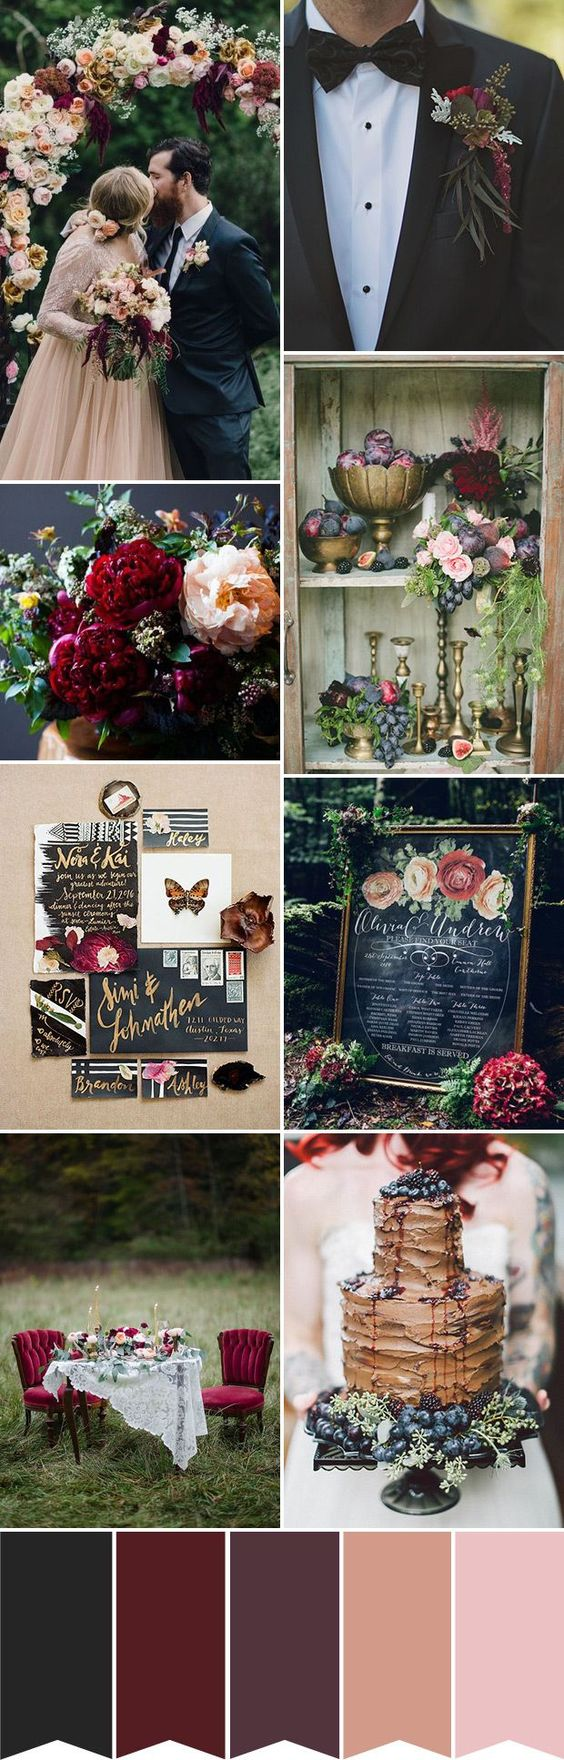 Top 3 Autumn Wedding Color Palettes to Match Your Wedding Band